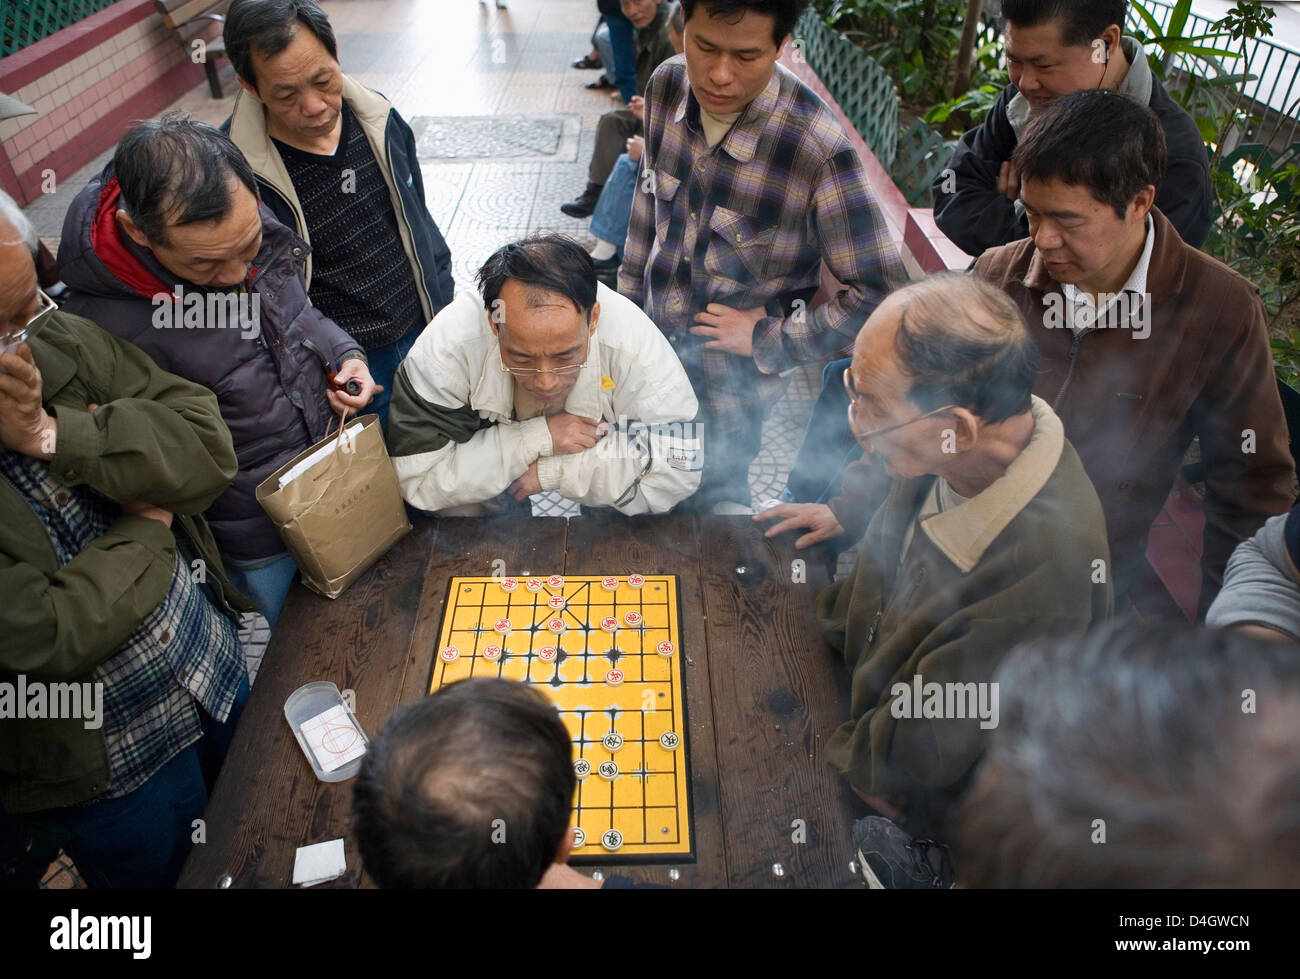 Two Chinese men playing Chinese Chess in the street, other men watching, Hong Kong, China - Stock Image